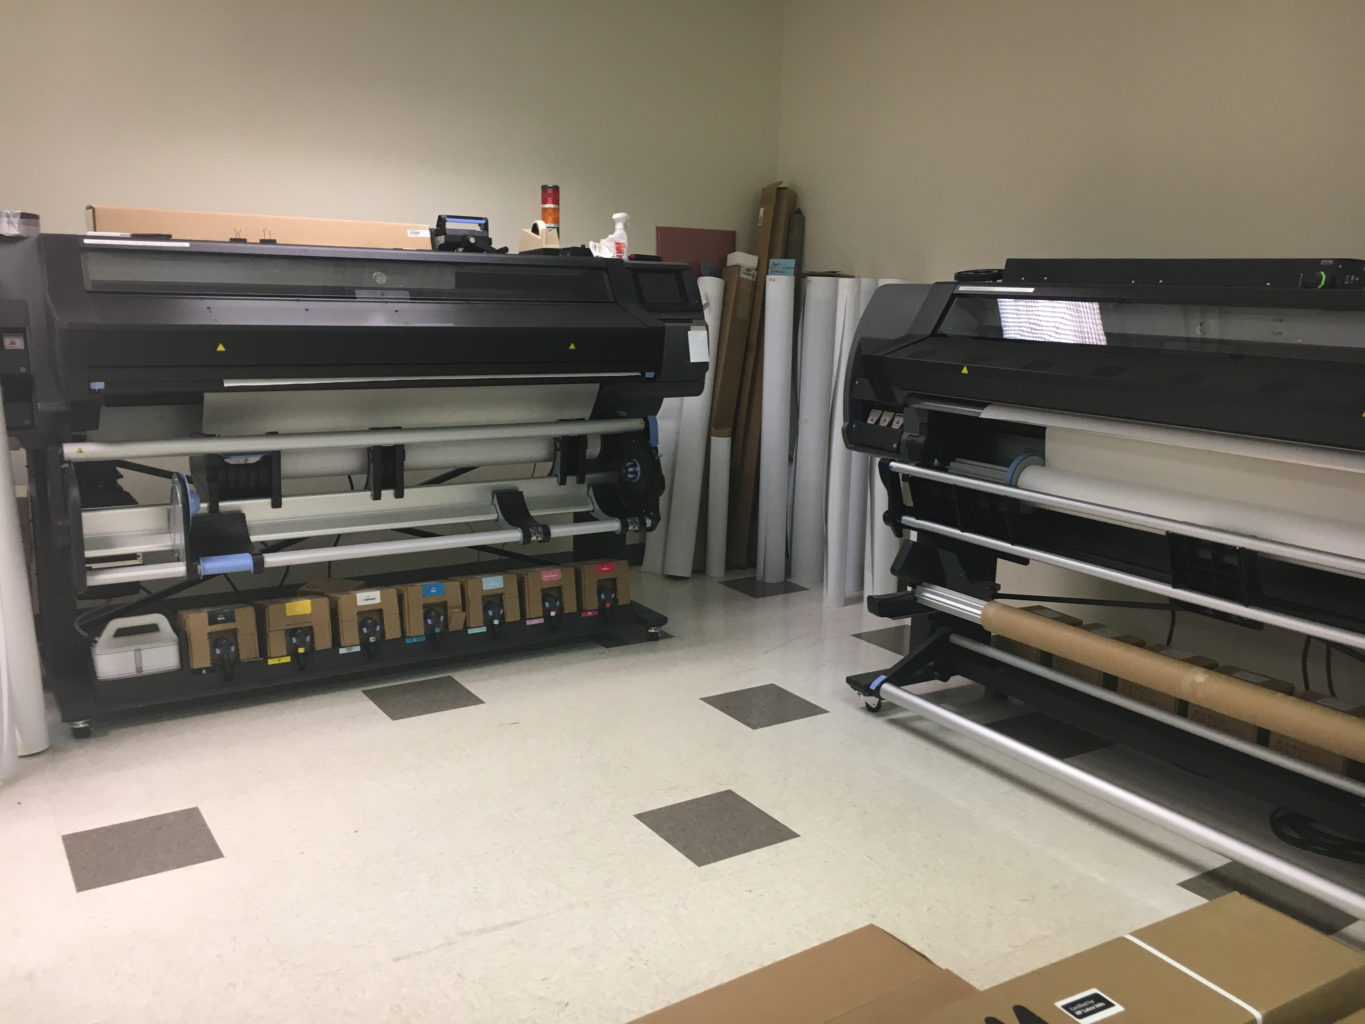 Printers and rollers for ART and association framing business